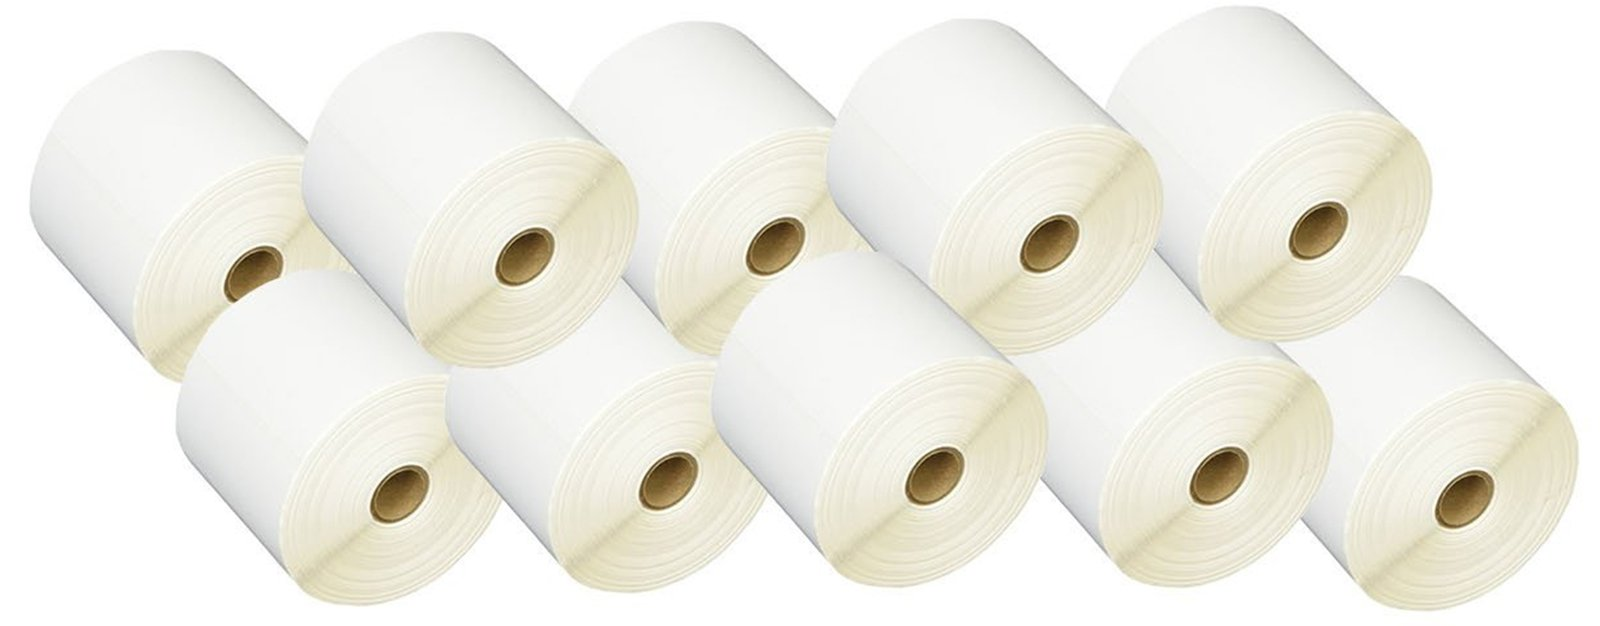 iMBAPrice 10 Rolls of 450 Label 4x6 Direct Thermal Shipping Labels Perfect for 1'' CORE THERMAL LASER PRINTERS